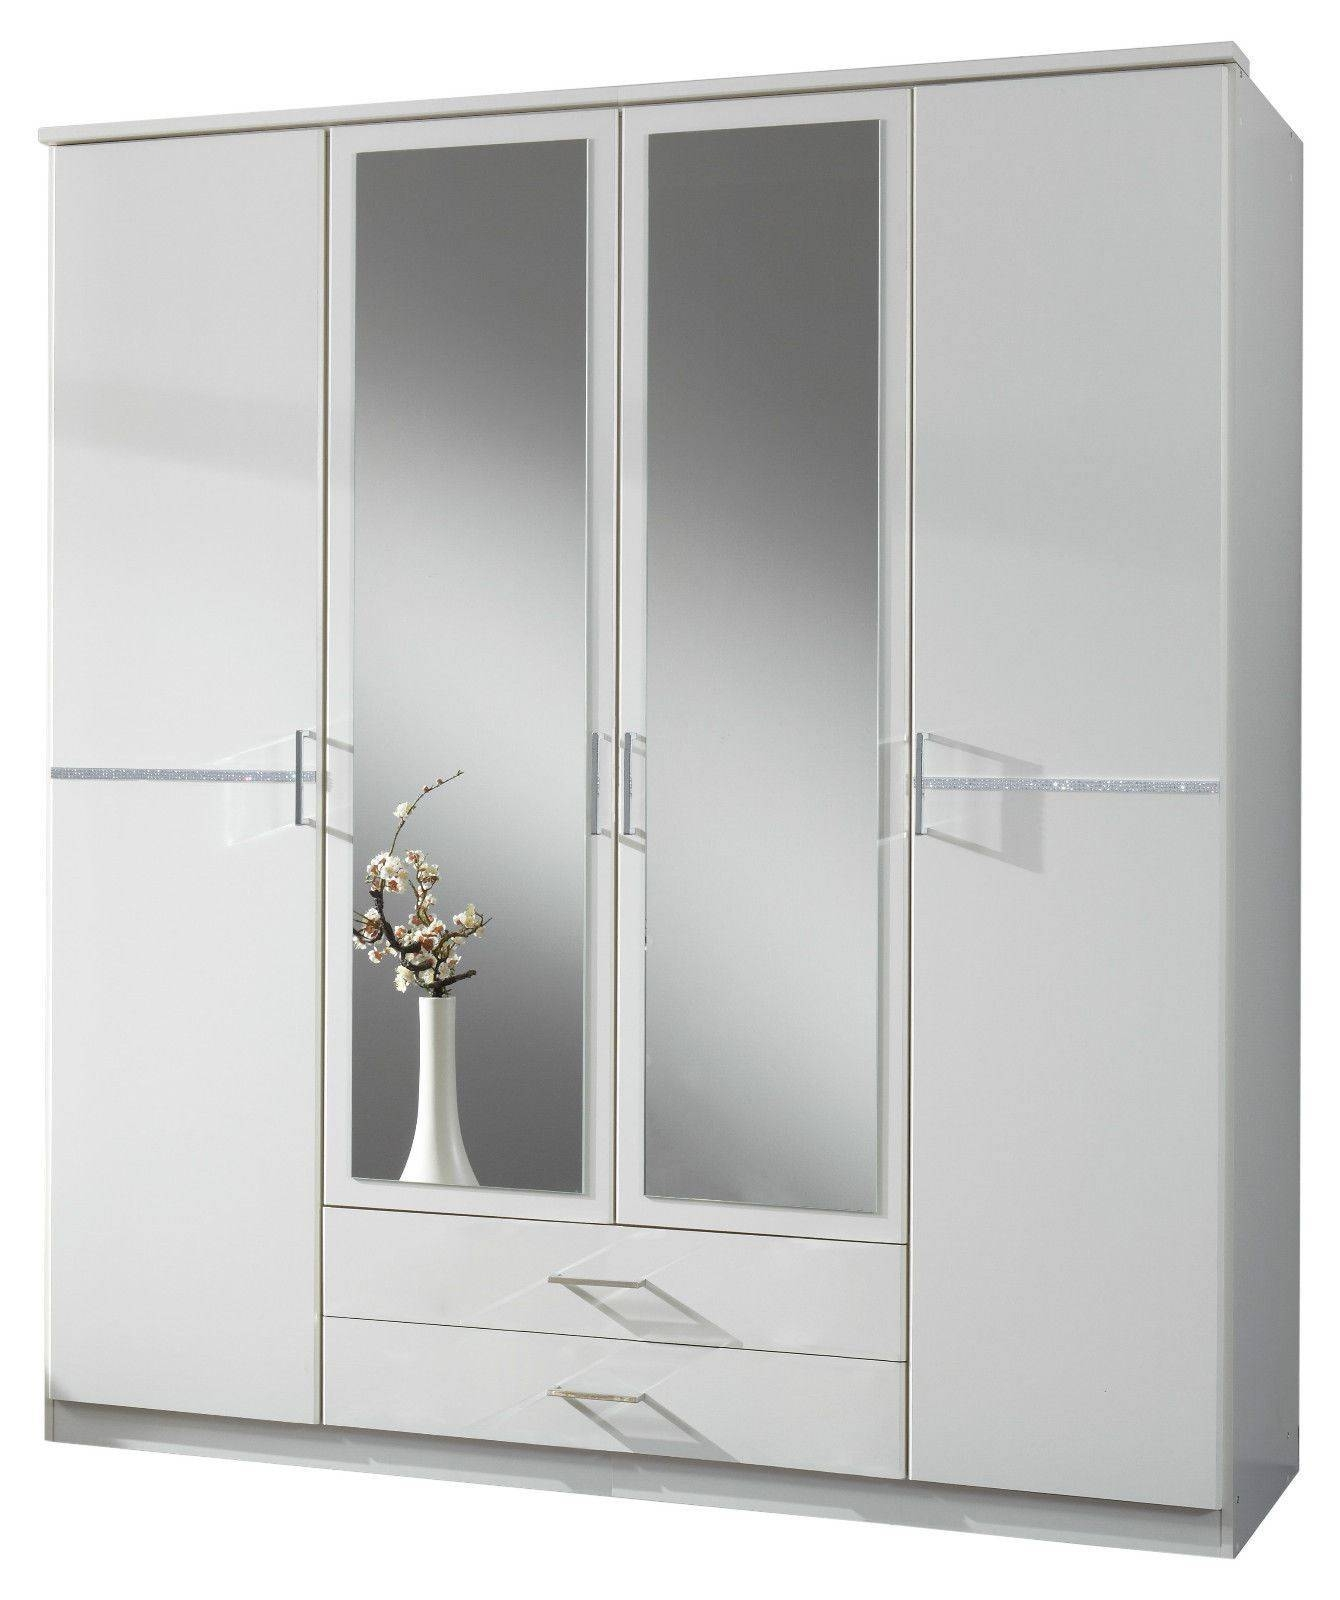 Bijoux German 4 Door Wardrobe White Crystal Rhinestone Bling intended for 4 Door Wardrobes With Mirror and Drawers (Image 3 of 15)